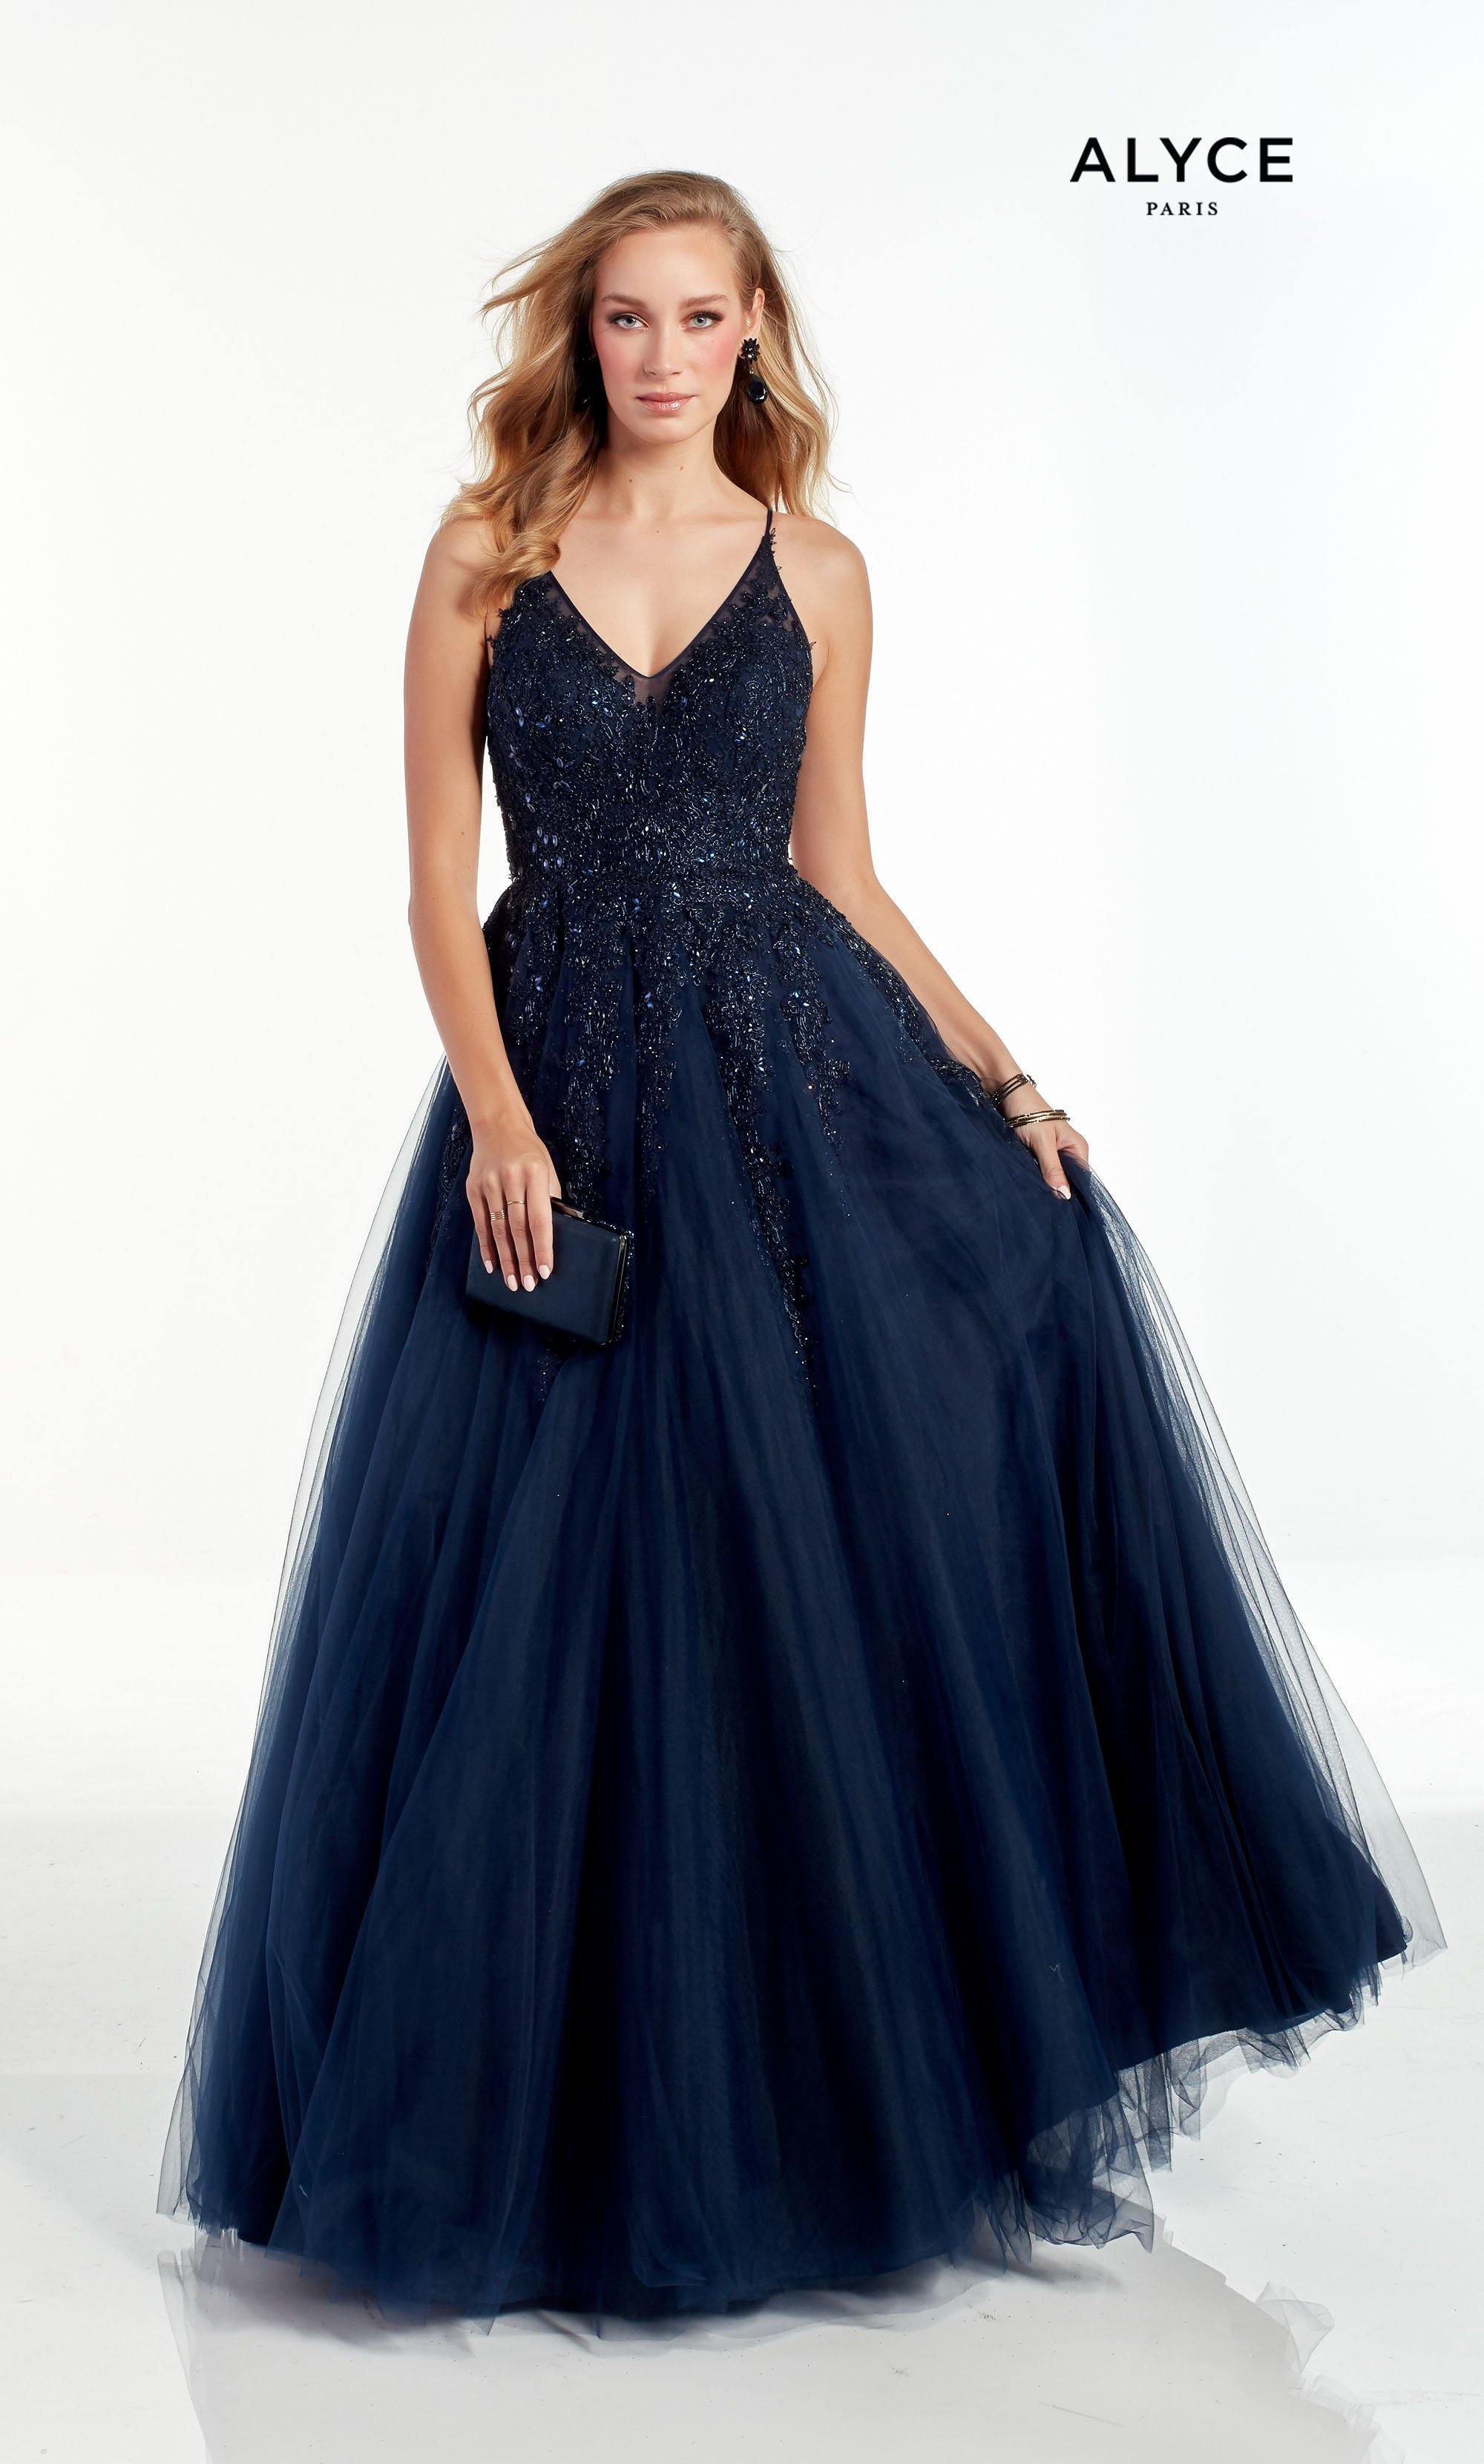 Midnight Blue ballgown with a V neckline and beaded detail